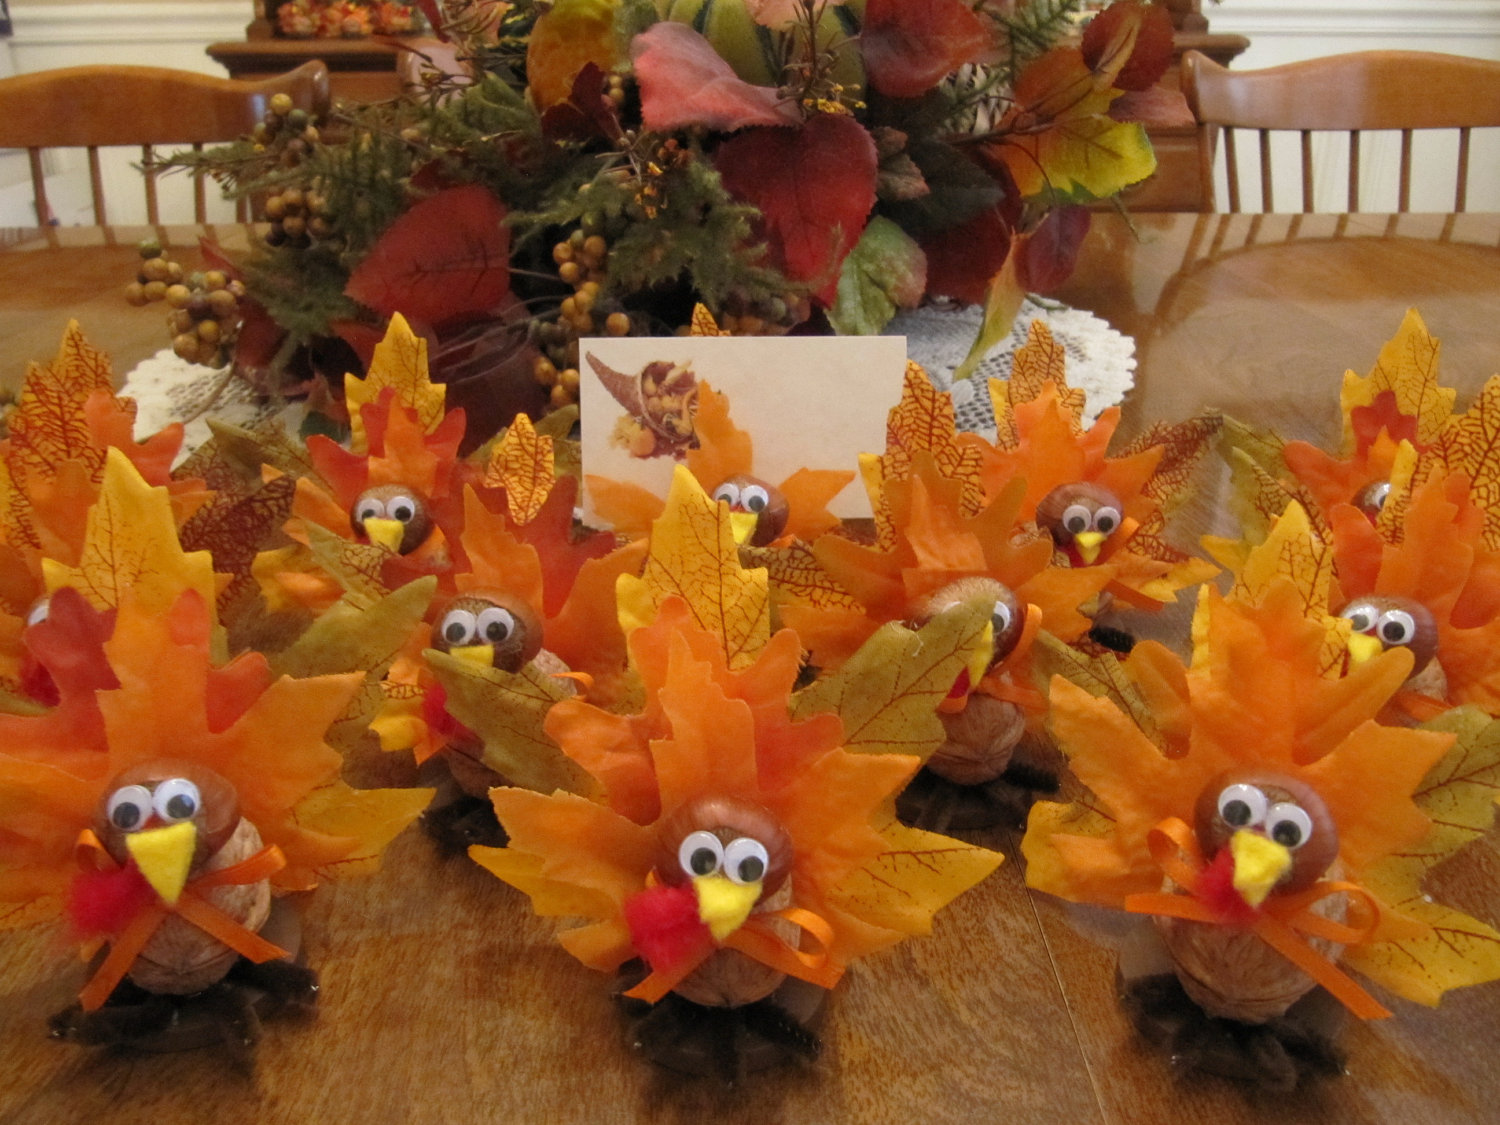 Thanksgiving Decorations Diy : Thanksgiving table ideas that are fun for the whole family